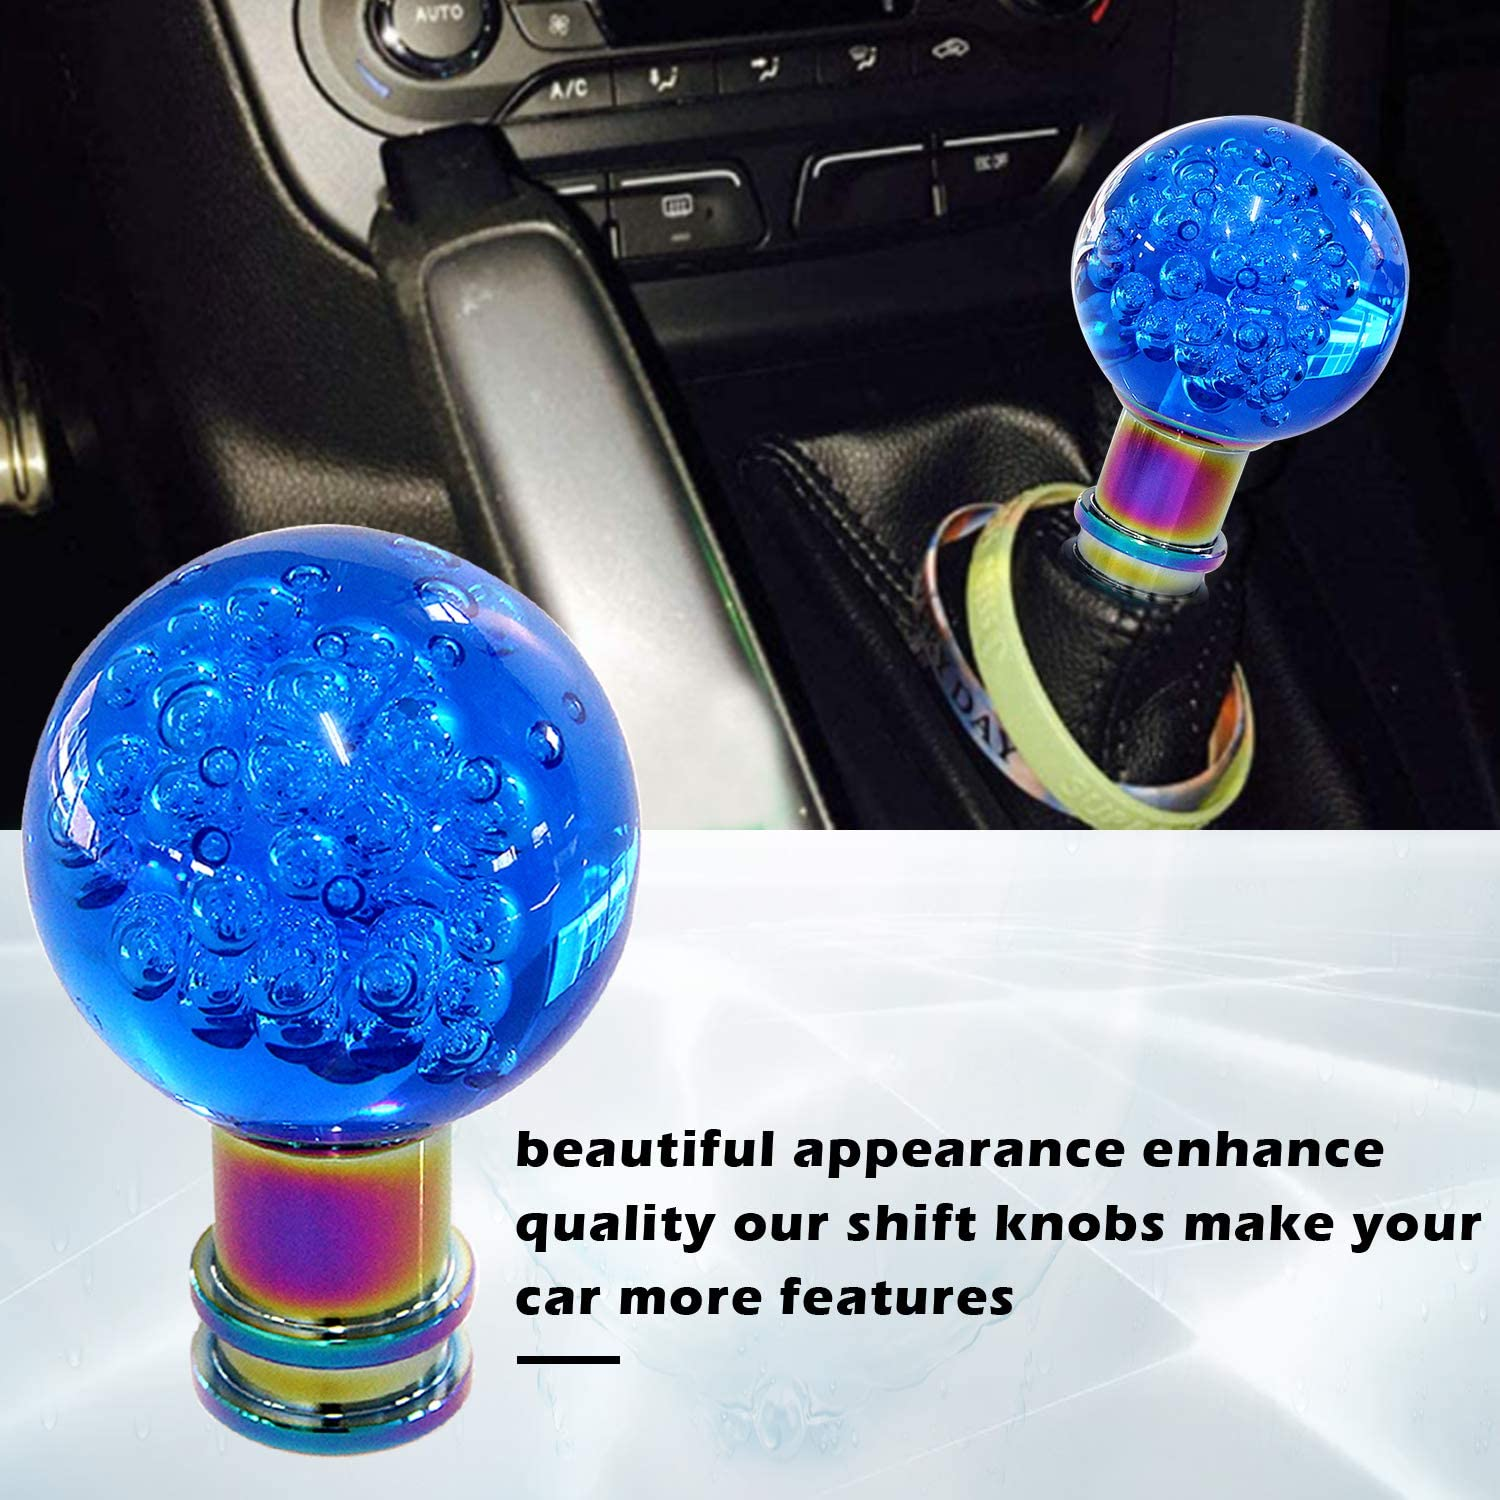 Green Luminous Gear Shift Knob Lever Shifter Head White Round Cue Luminous Ball Fit for Most Automatic Manual Vehicles 5 6 Speed